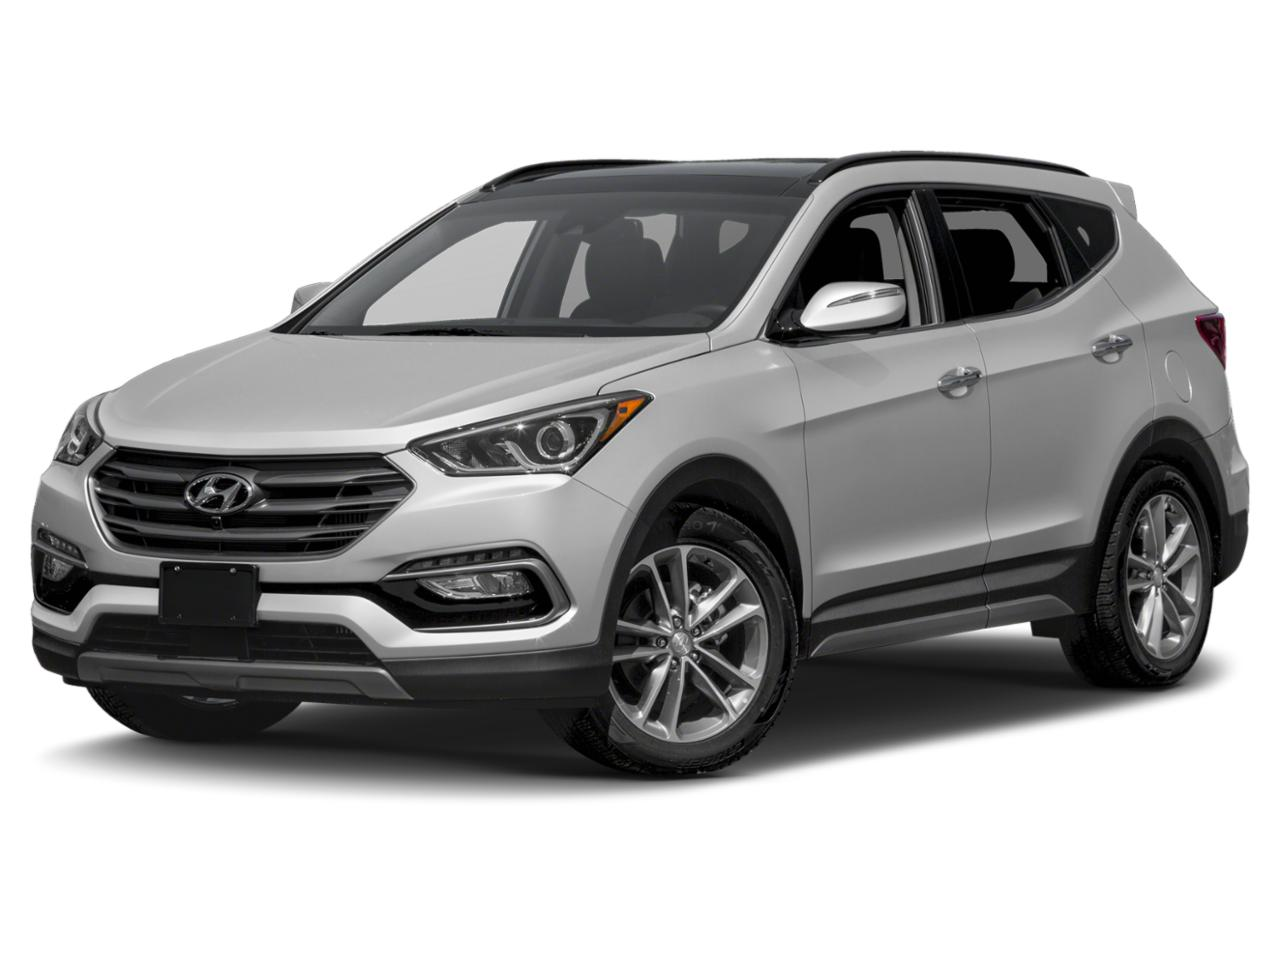 2018 Hyundai Santa Fe Sport Vehicle Photo in Pittsburg, CA 94565